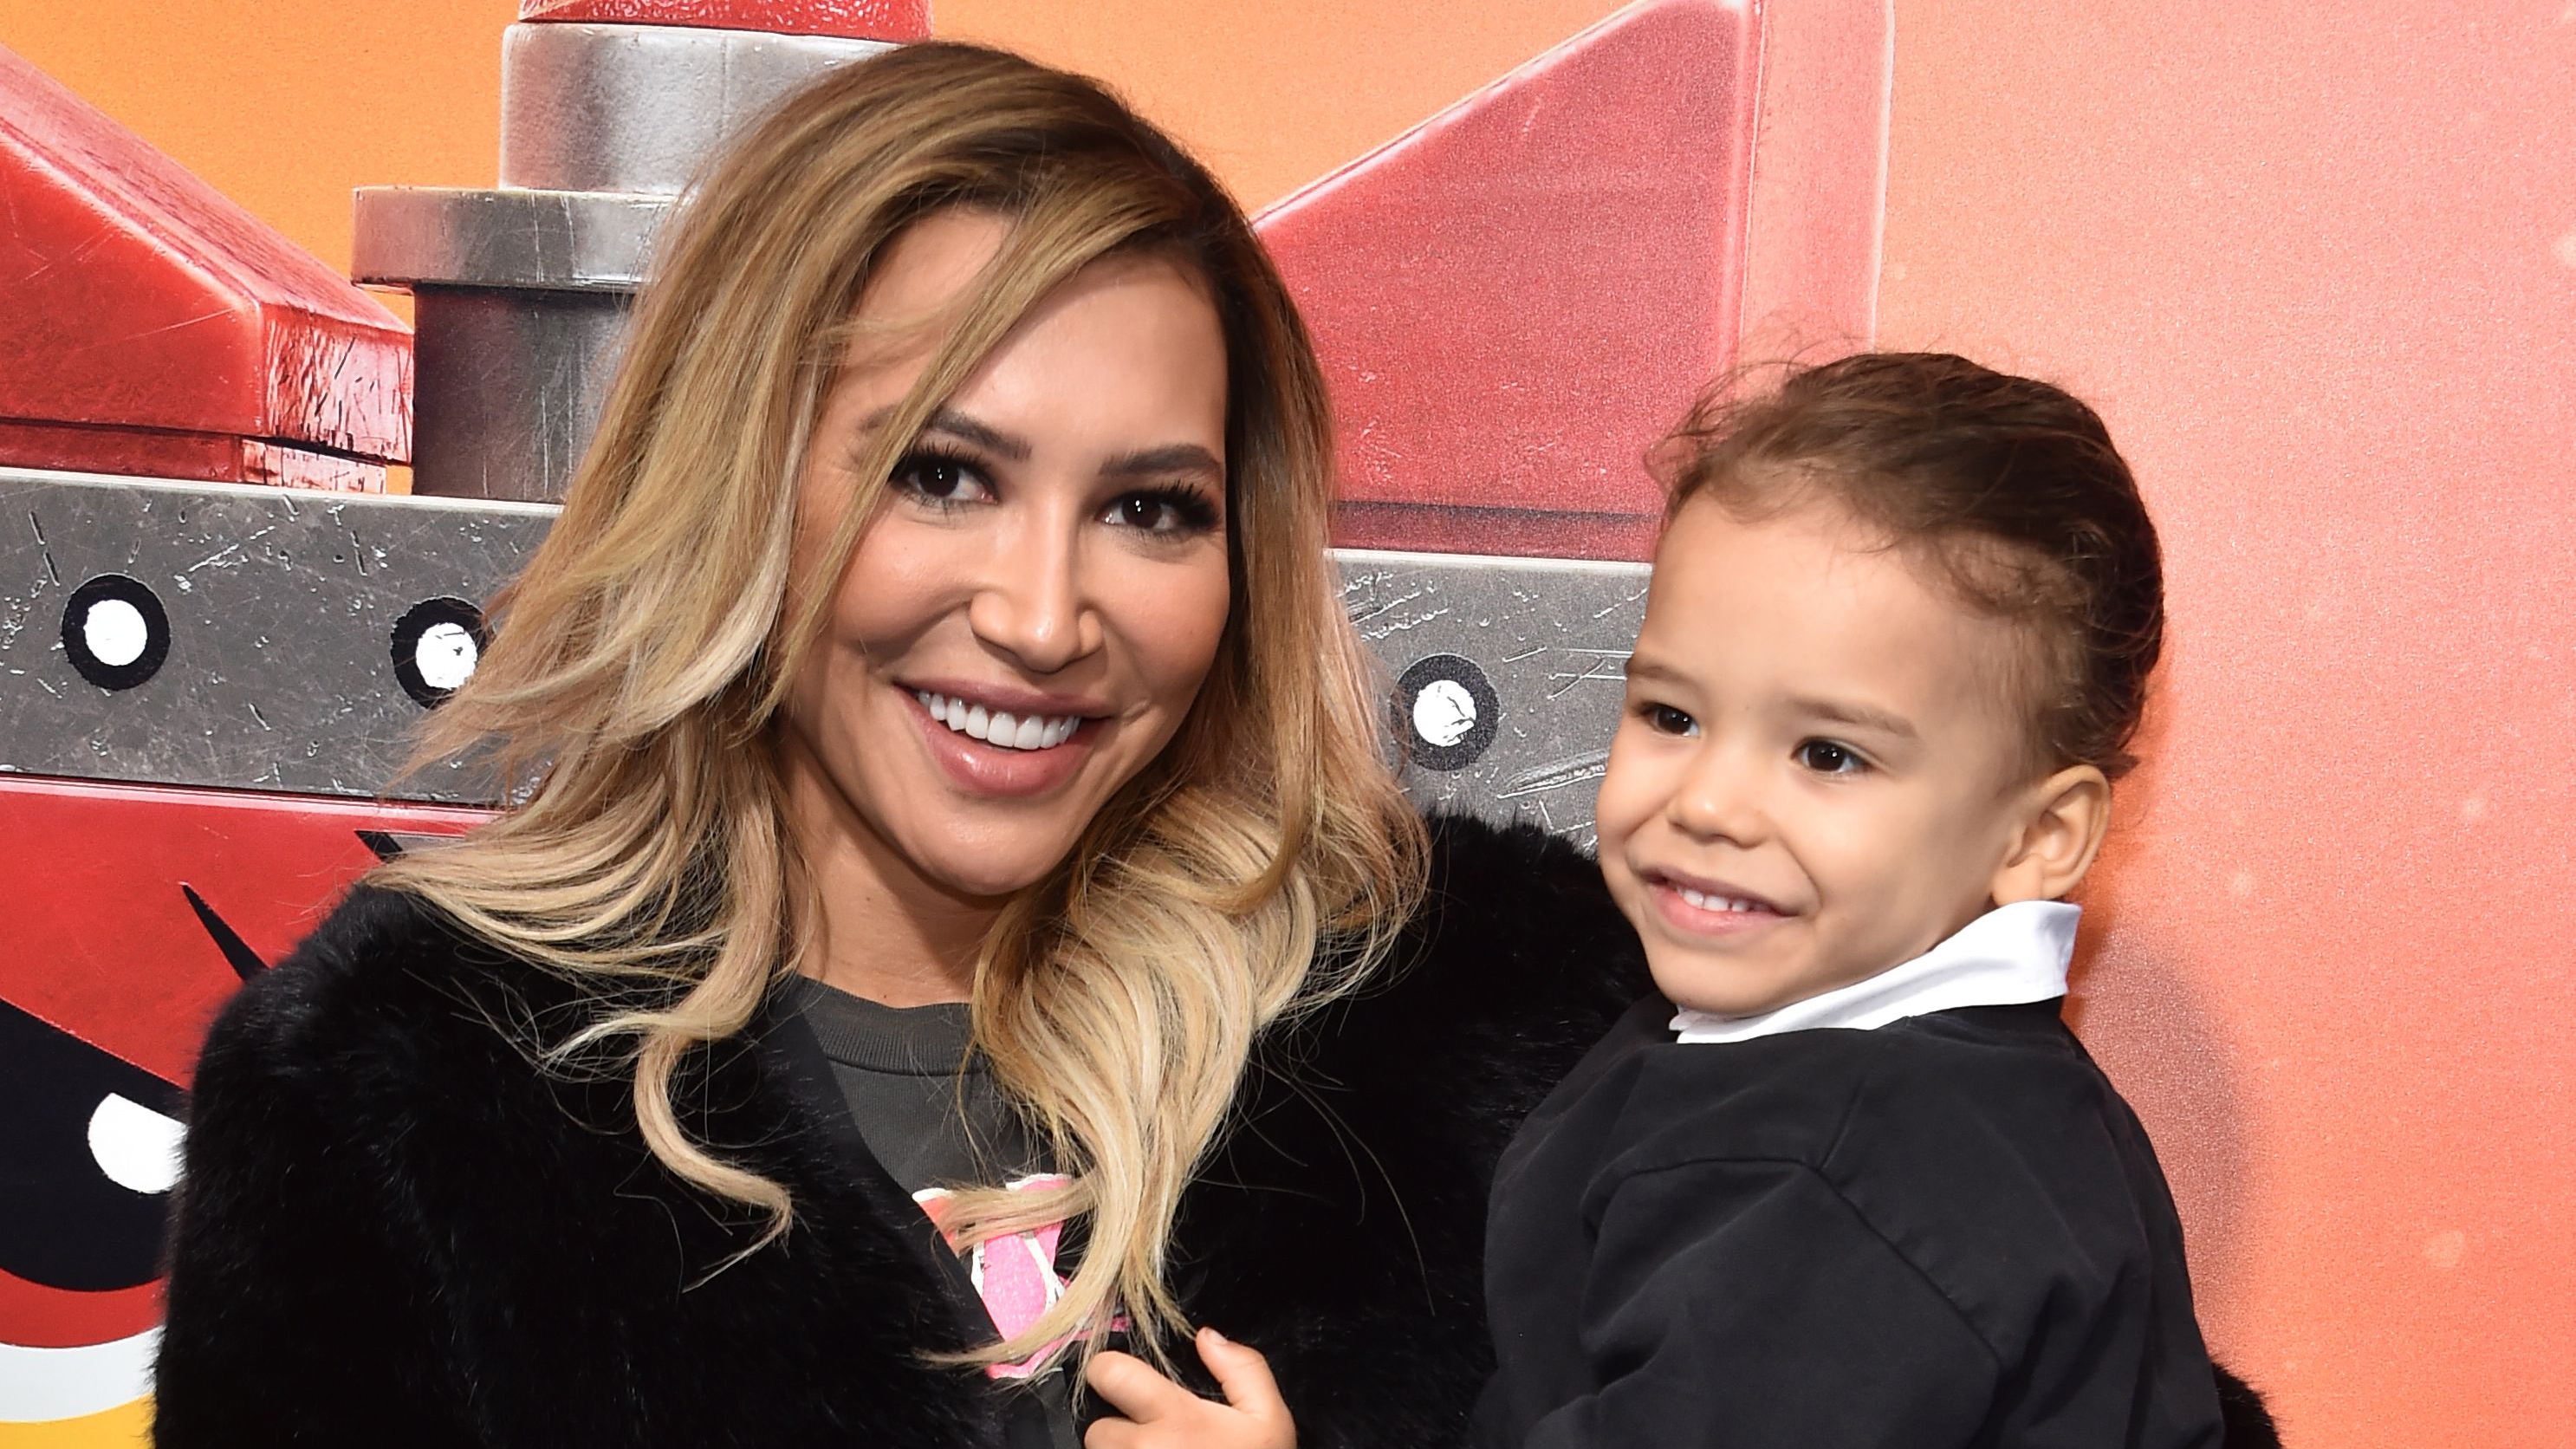 Naya Rivera's ex Ryan Dorsey files wrongful death lawsuit on behalf of their son Josey – Fox News